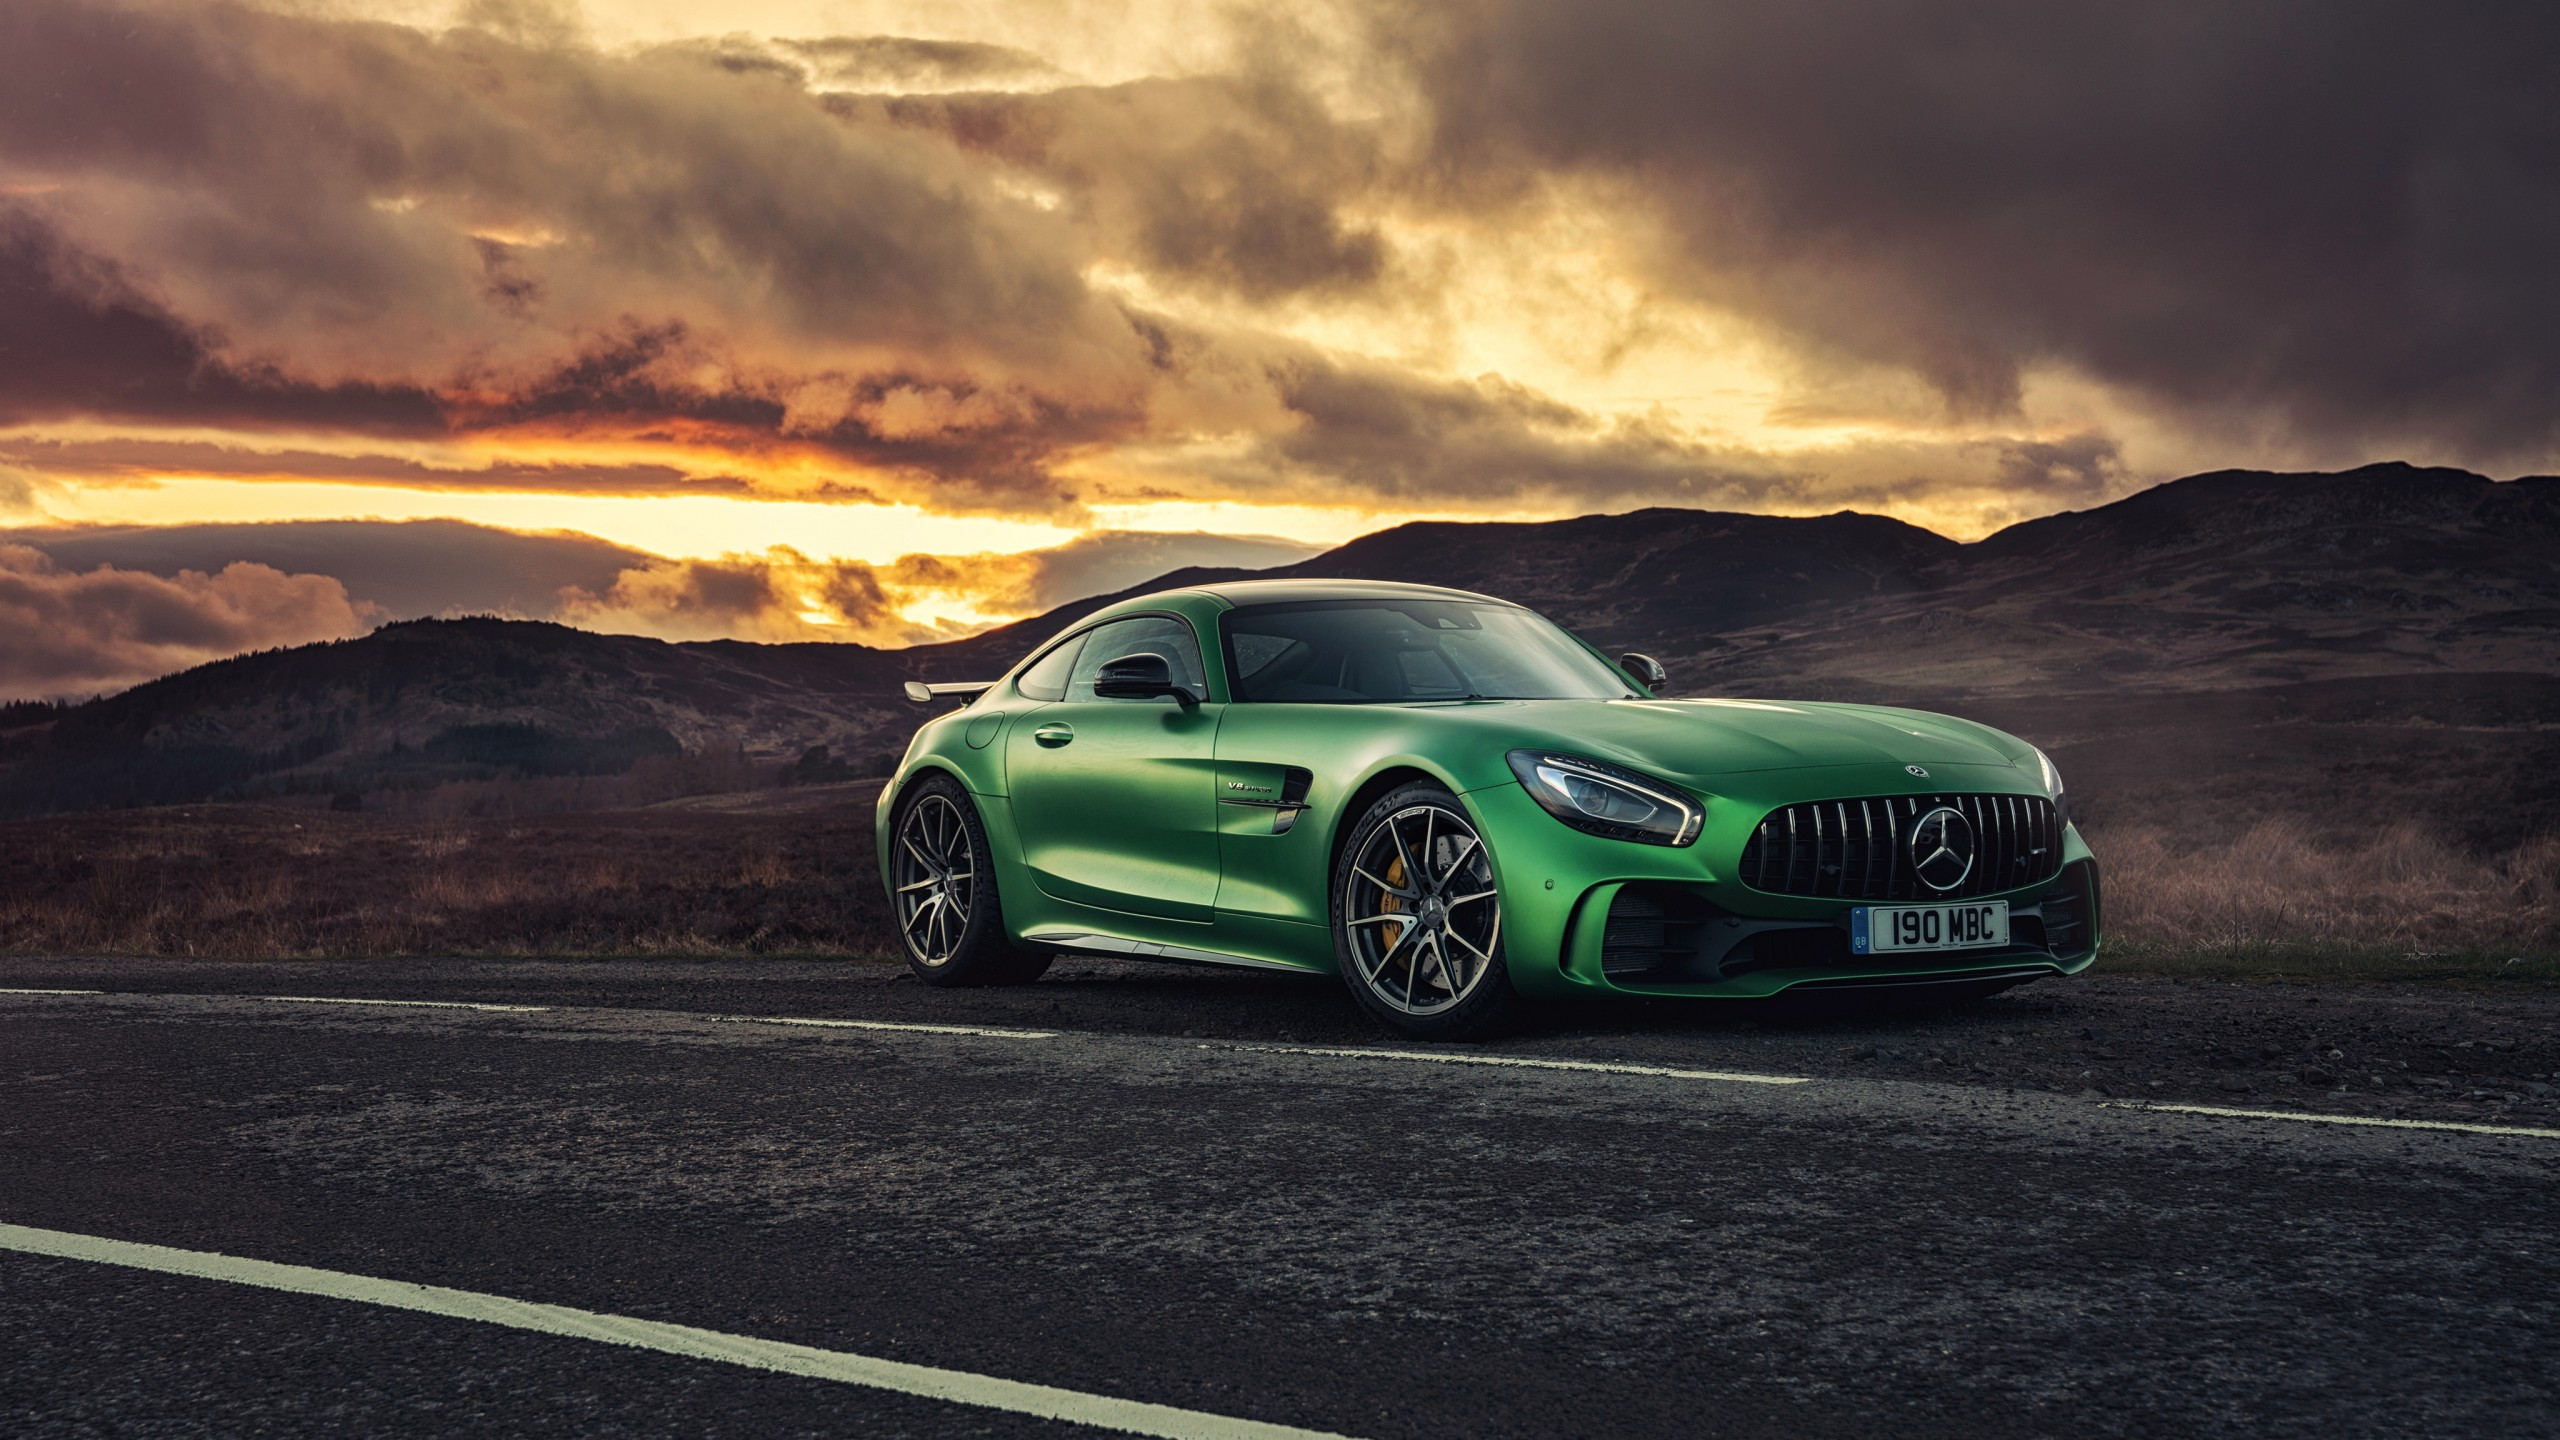 Mercedes Amg Coupe 2017 >> Mercedes AMG GT R 2017 4K Wallpaper | HD Car Wallpapers | ID #7770